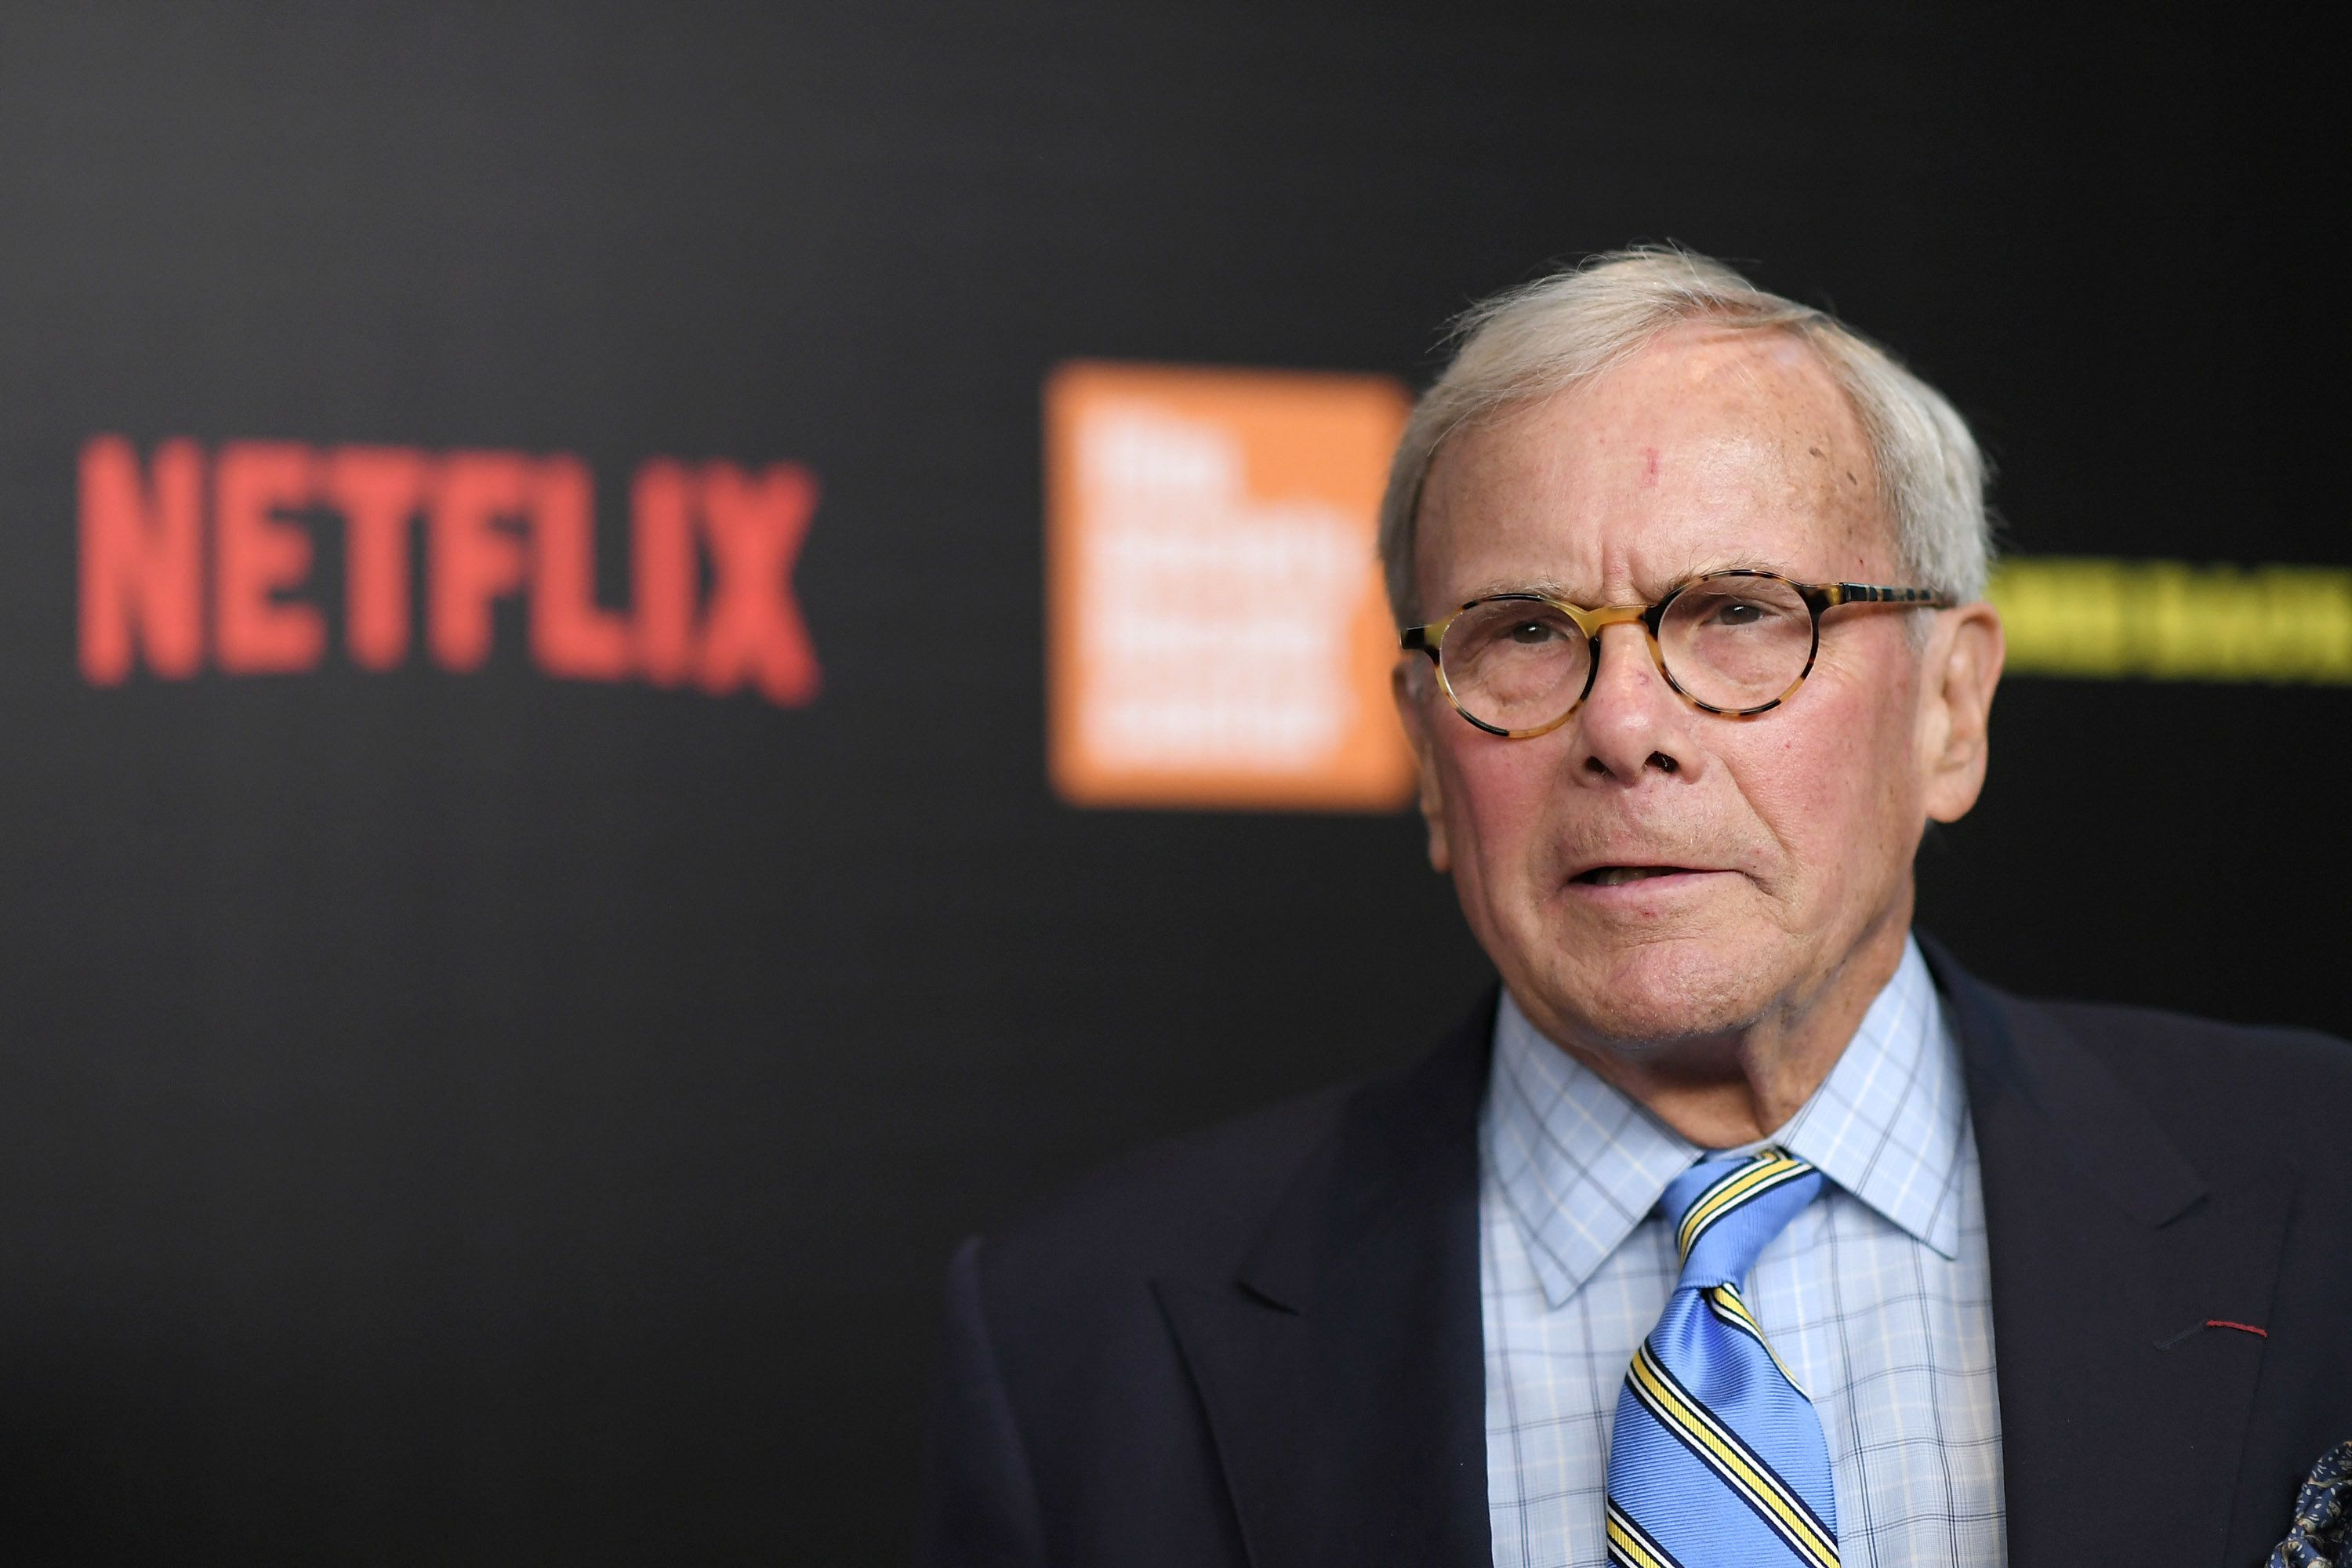 NEW YORK, NY - MARCH 27:  Tom Brokaw attends the 'Five Came Back' world premiere at Alice Tully Hall at Lincoln Center on March 27, 2017 in New York City.  (Photo by Mike Coppola/Getty Images)